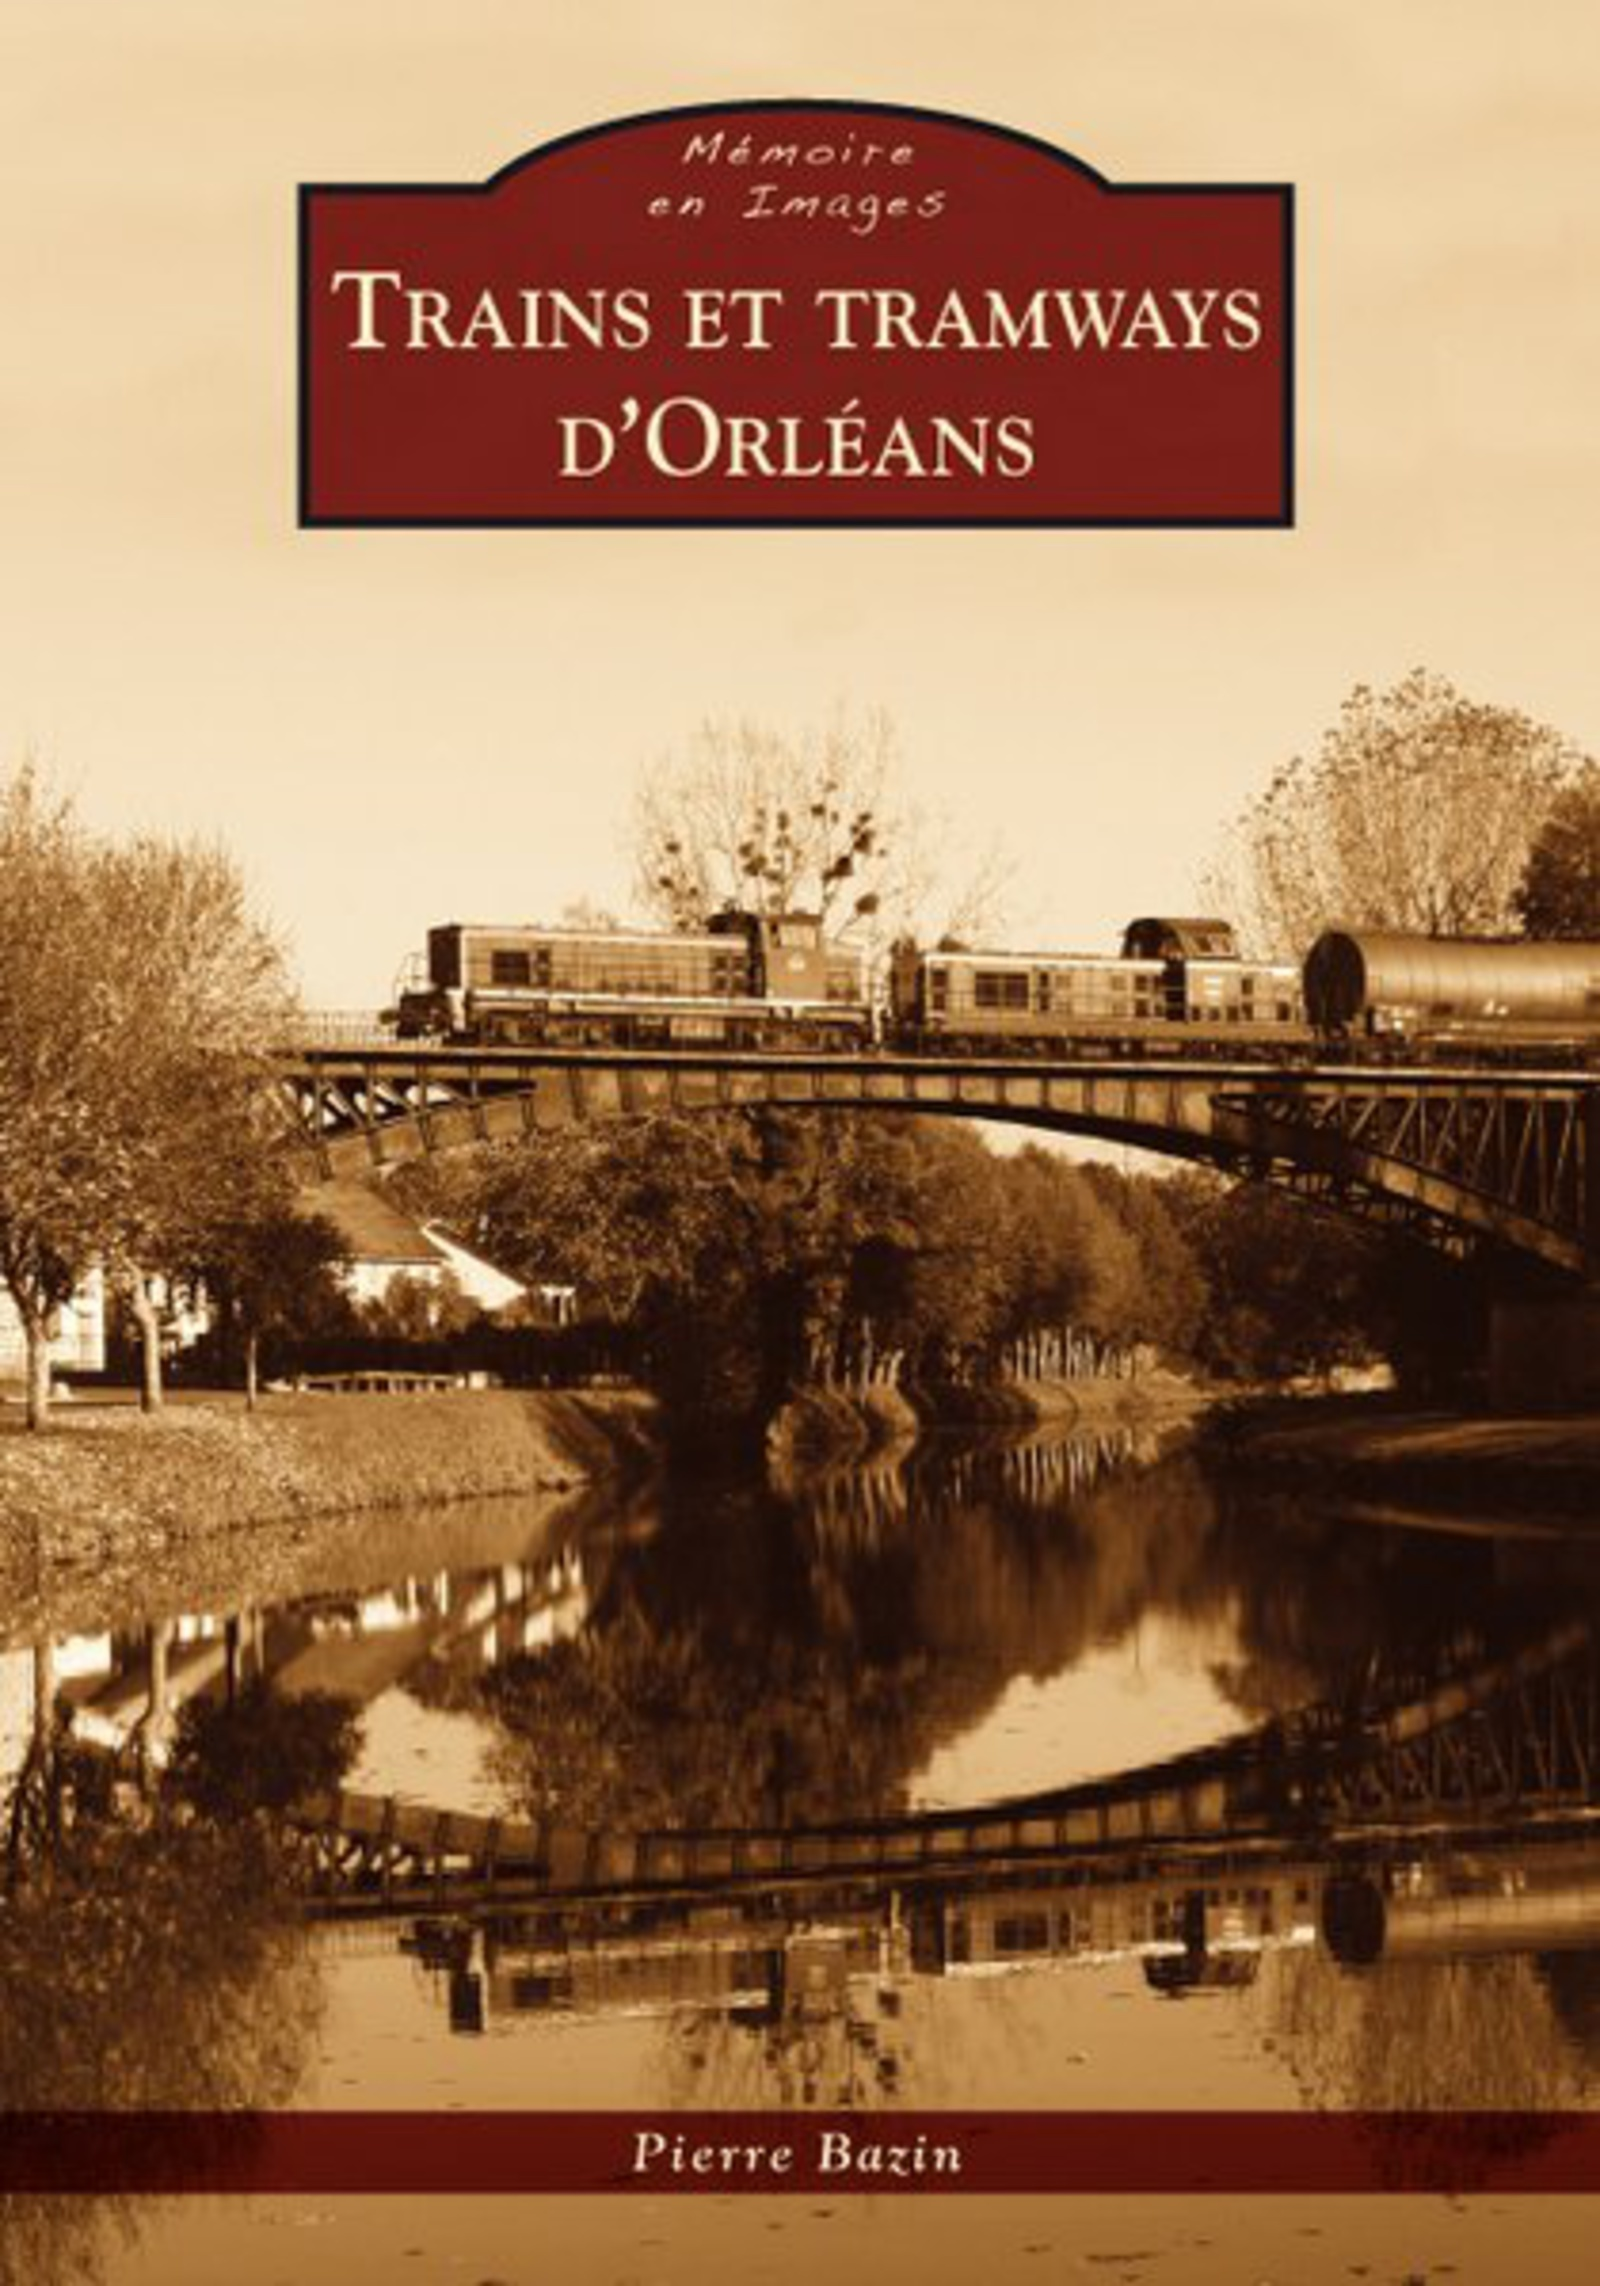 TRAINS ET TRAMWAYS D'ORLEANS